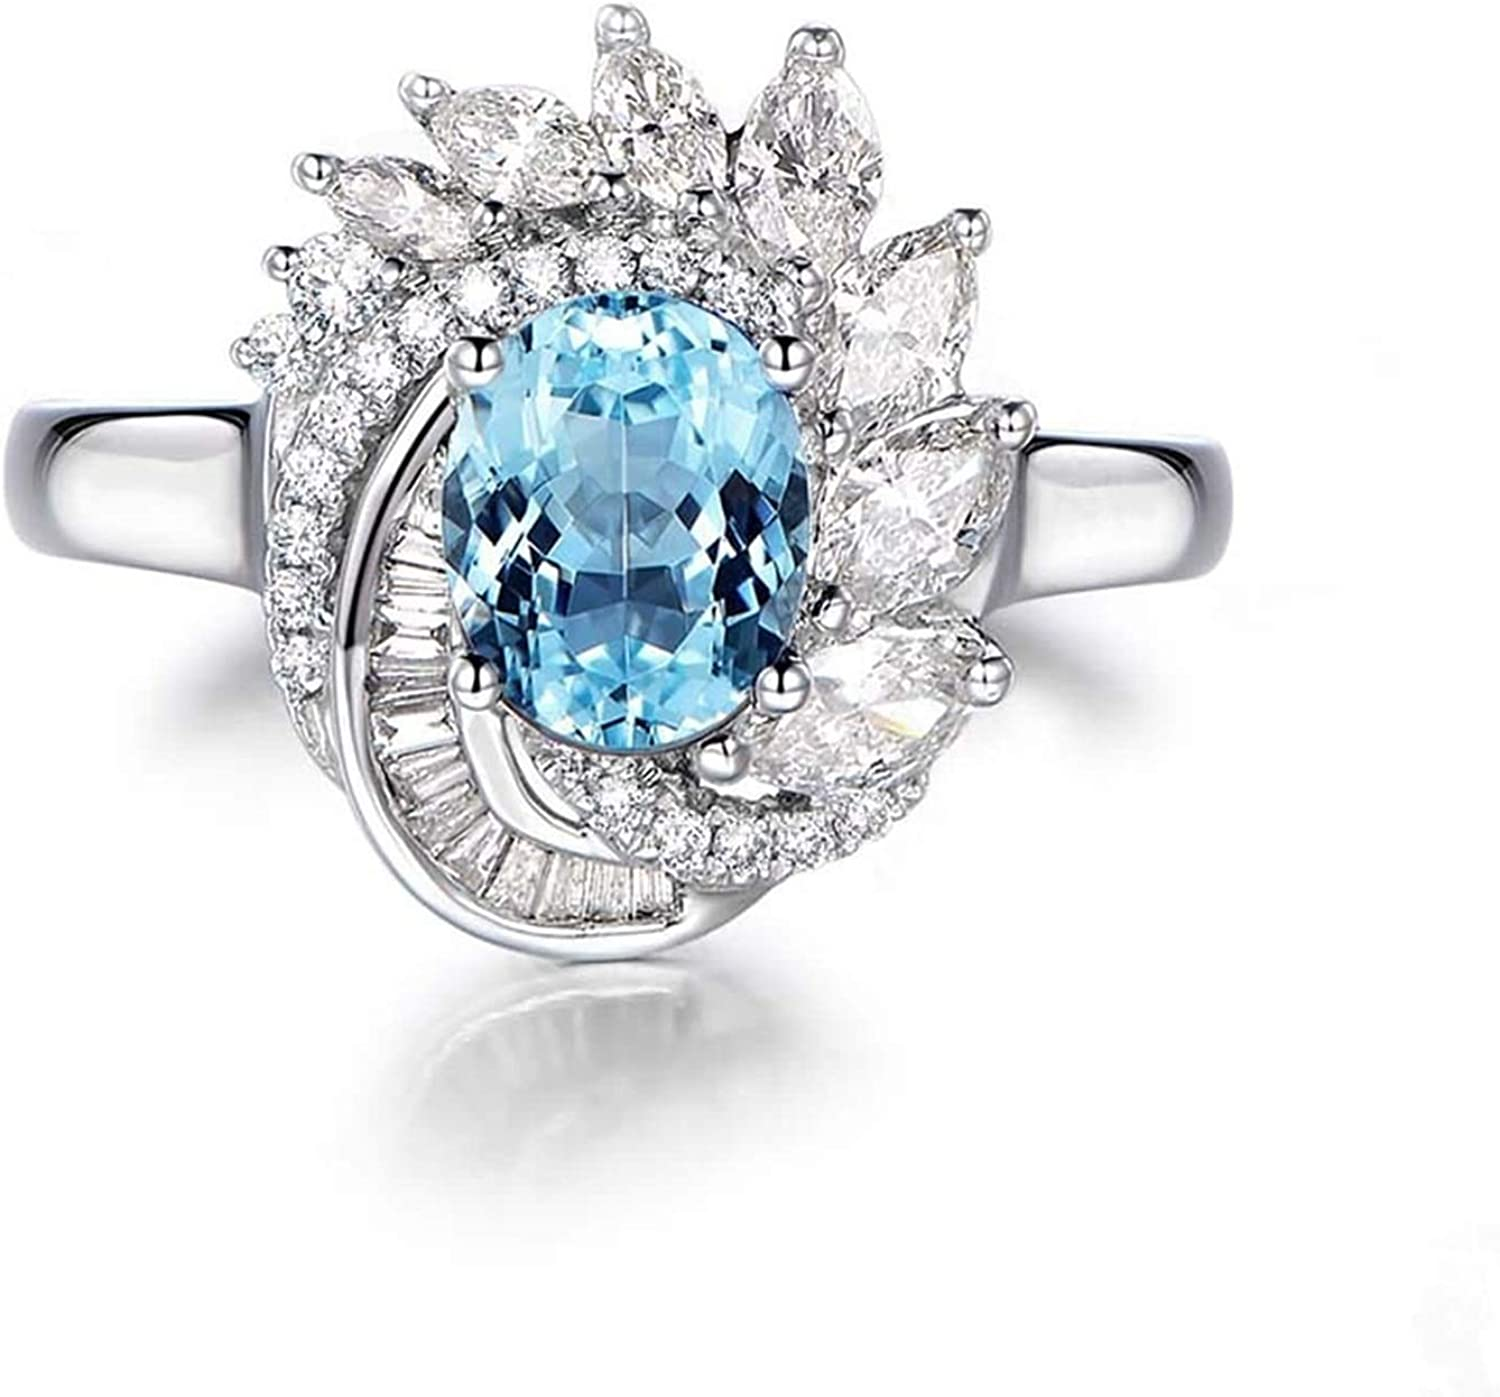 AMDXD Jewelry 925 Sterling Silver Anniversary Ring for Women Oval Cut Topaz Flower Rings